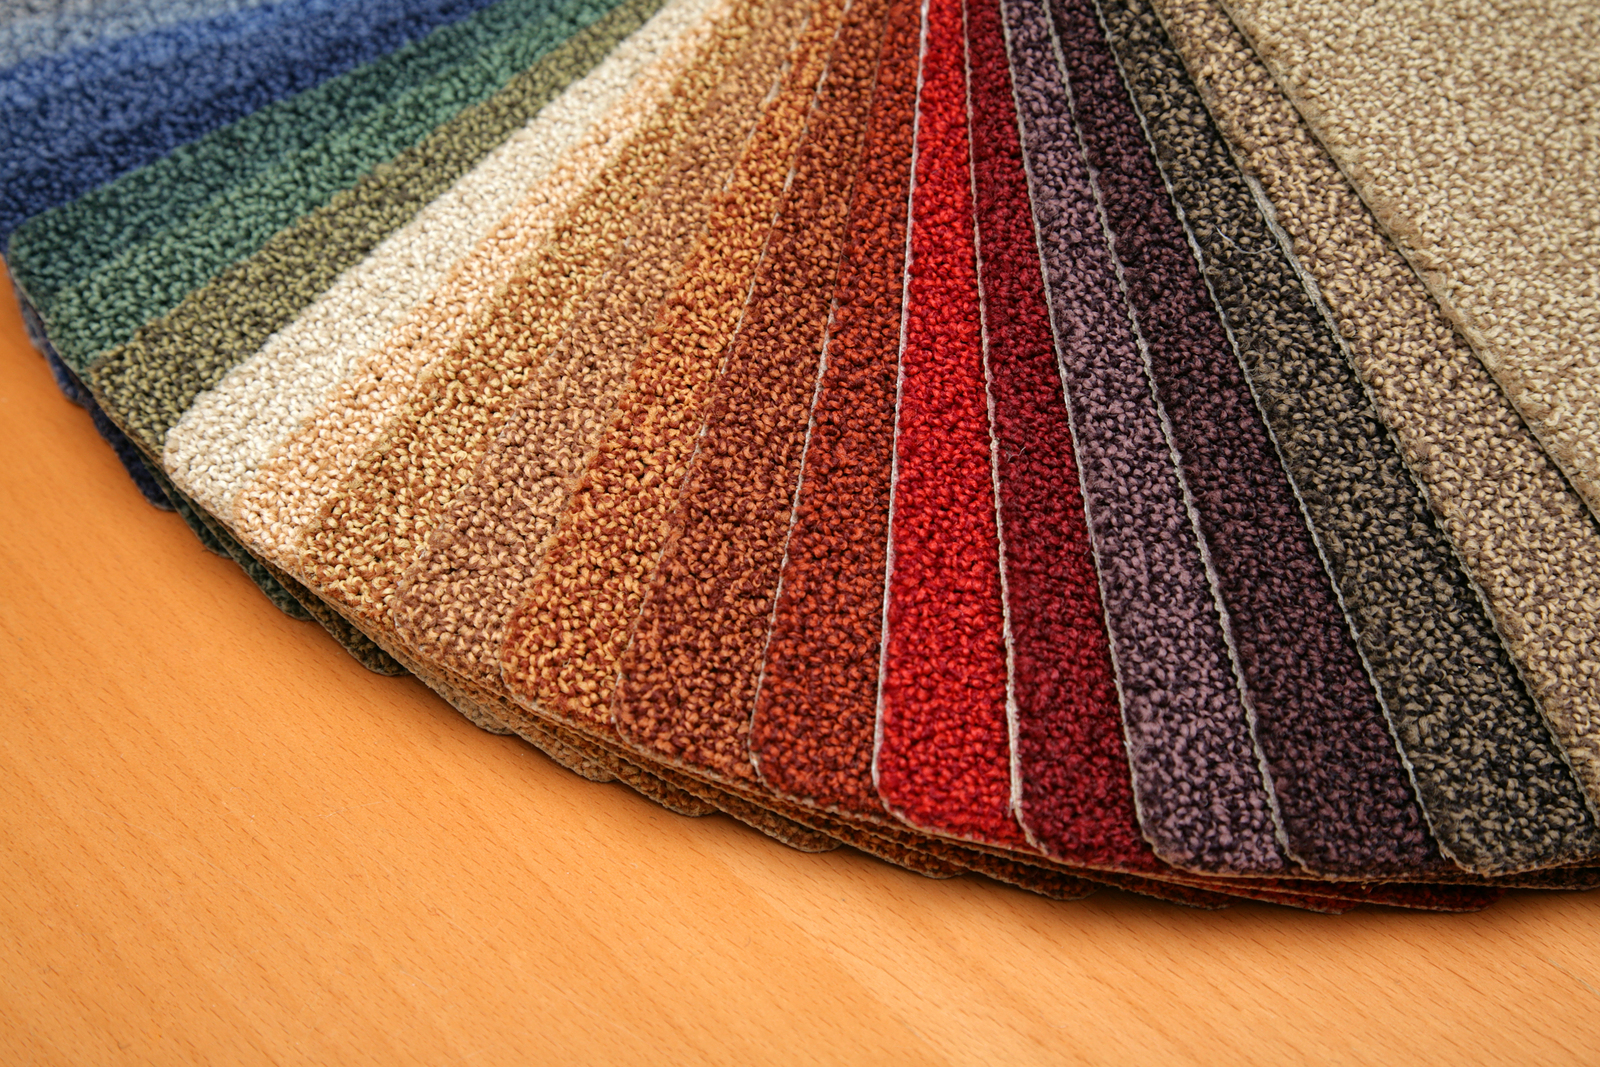 Dr house cleaning different types of carpets part 4 for Best types of carpet